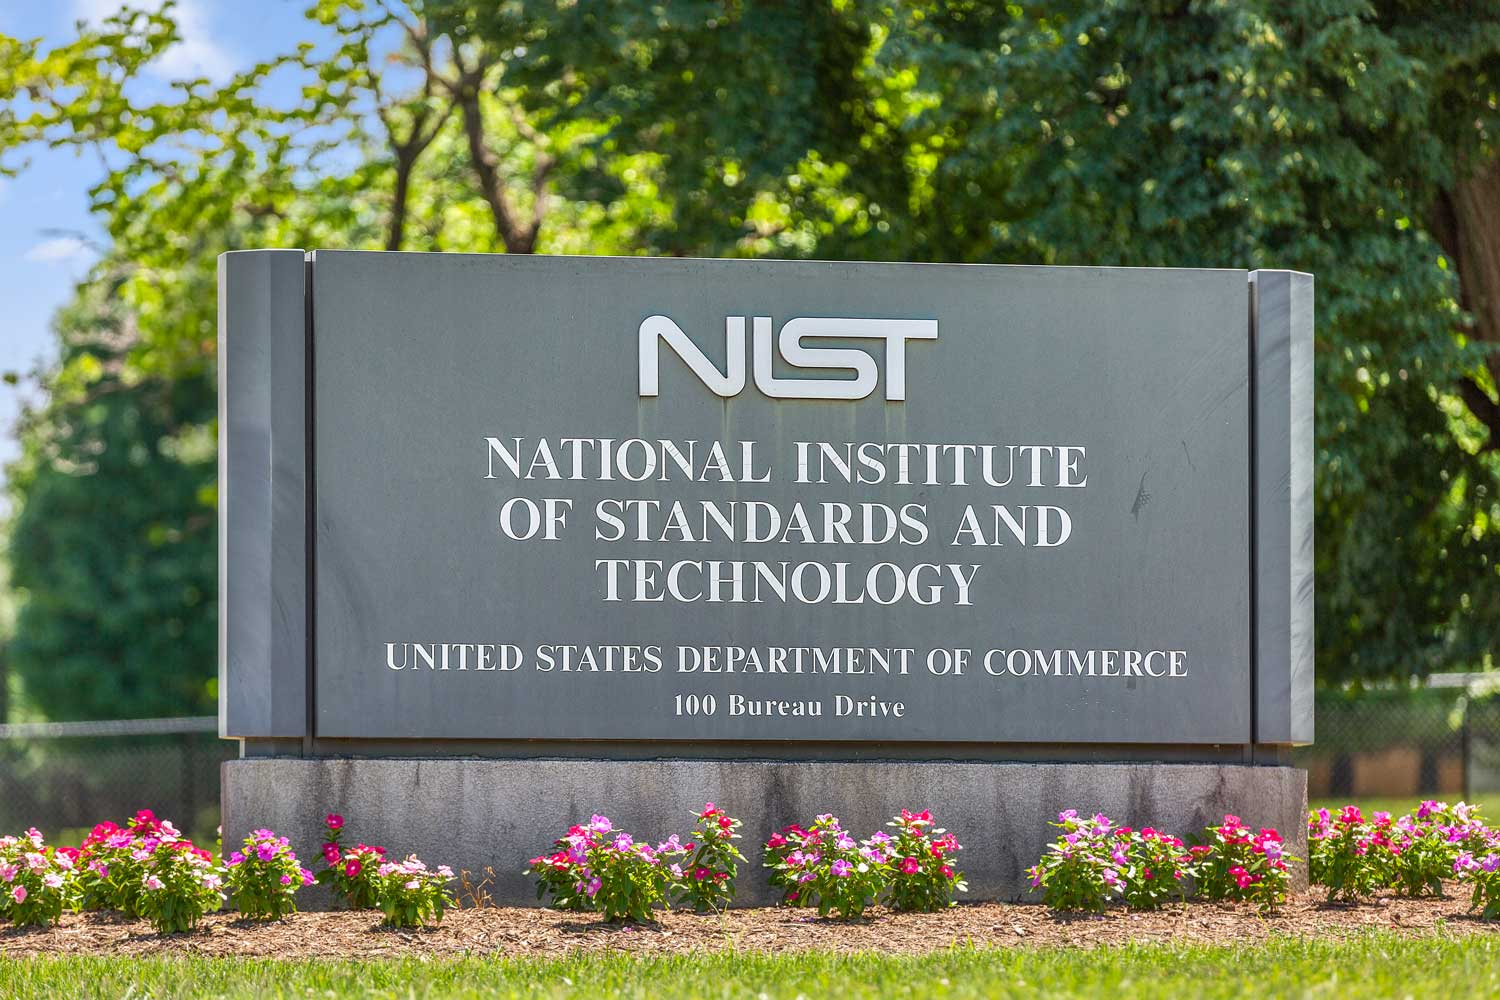 NIST is across the street from Governor Square Apartments in Gaithersburg, MD